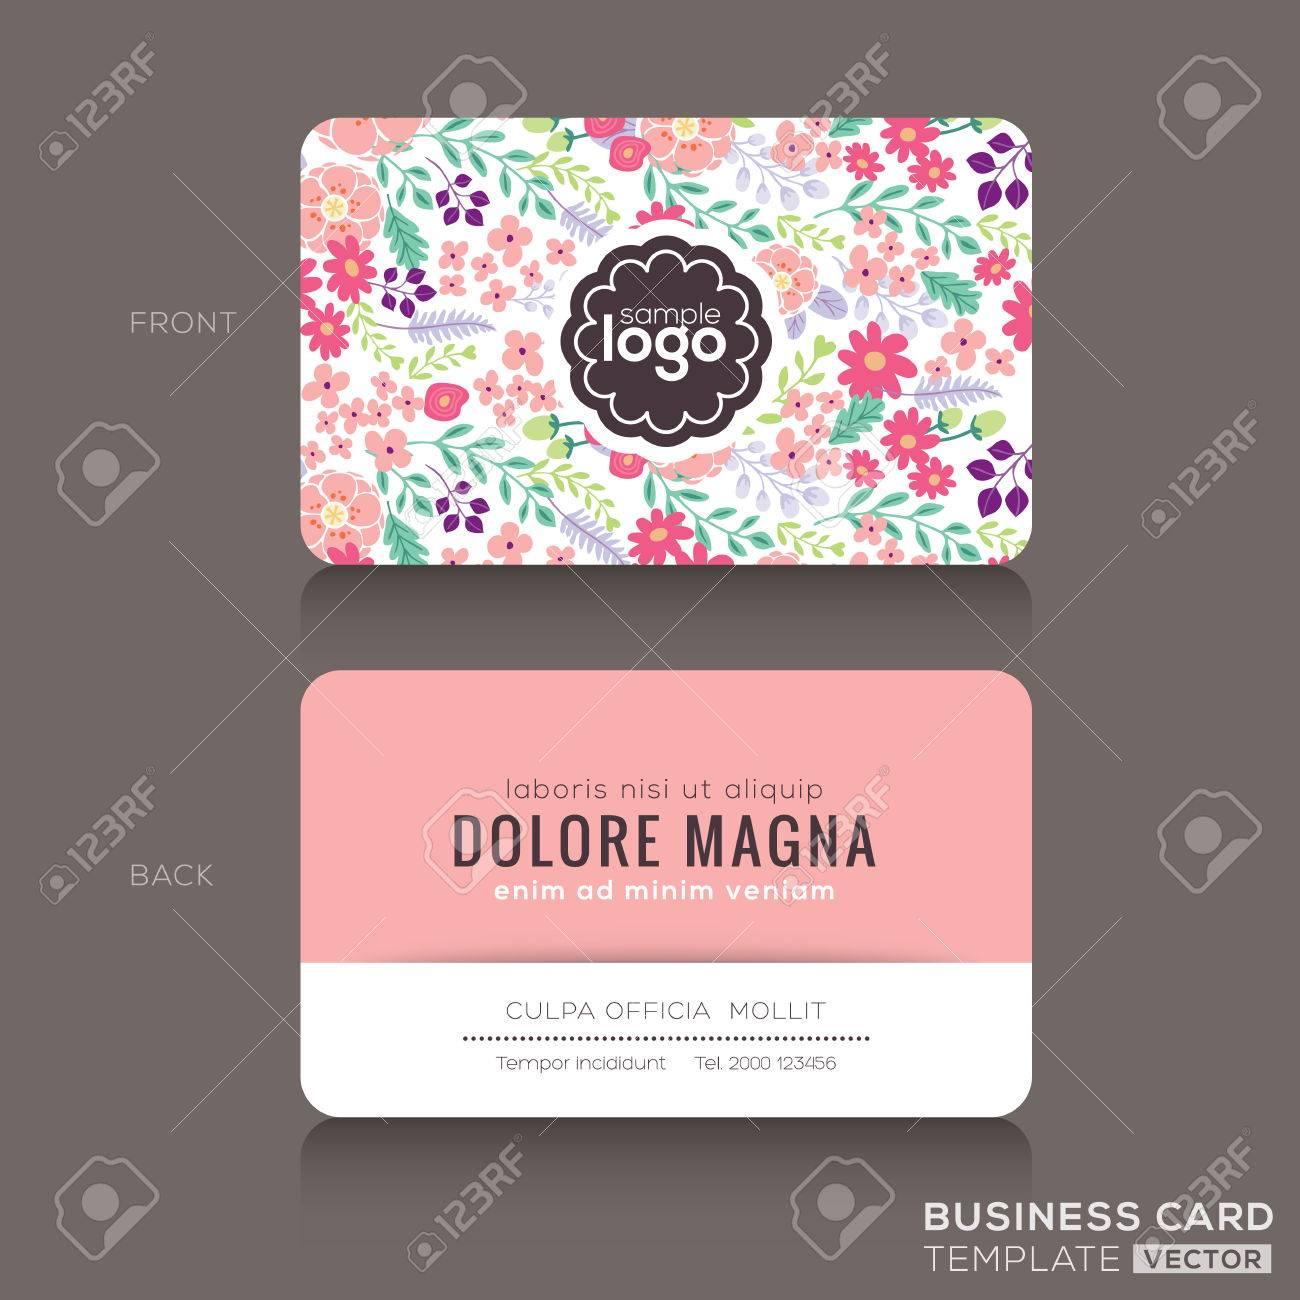 Cute Floral Pattern Business Card Name Card Design Template - Cute business cards templates free